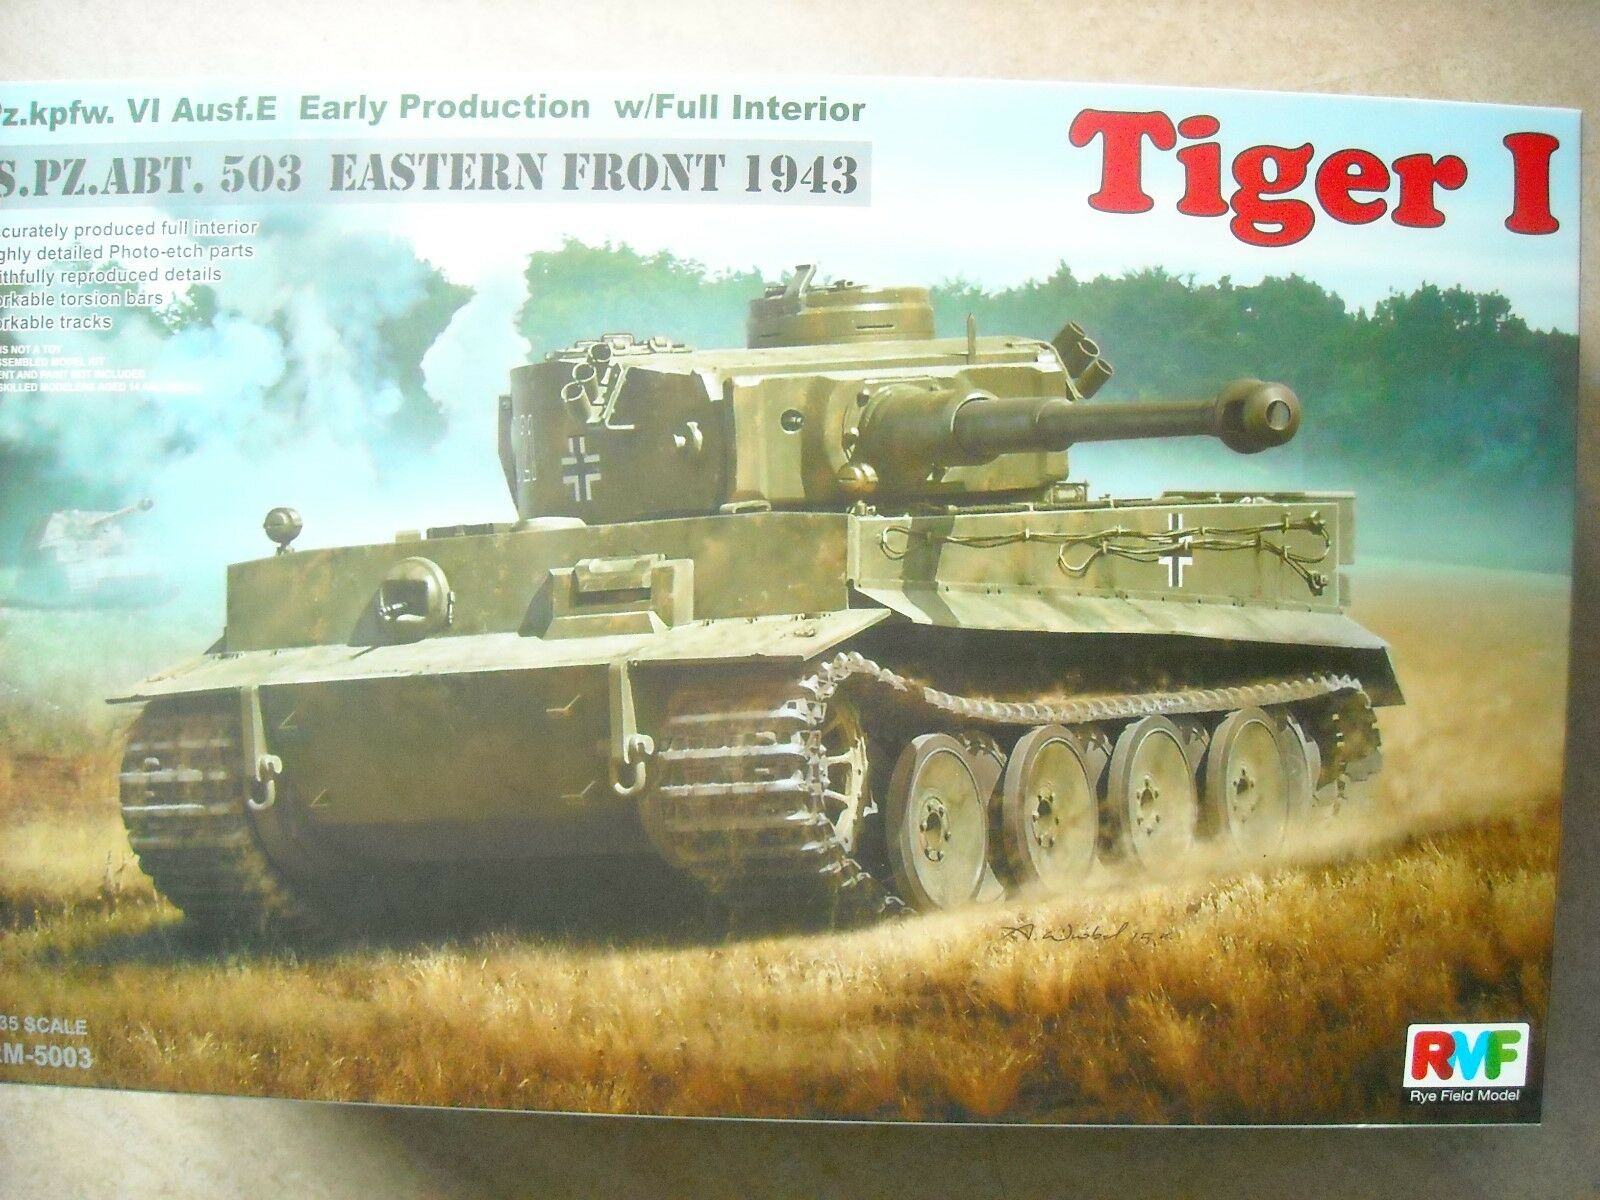 RYE FIELD-1 35- RM-5003-TIGER I,PZ.KPFW.VI AUSF.E AUSF.E AUSF.E EARLY PRODUCTION TIGER I 477